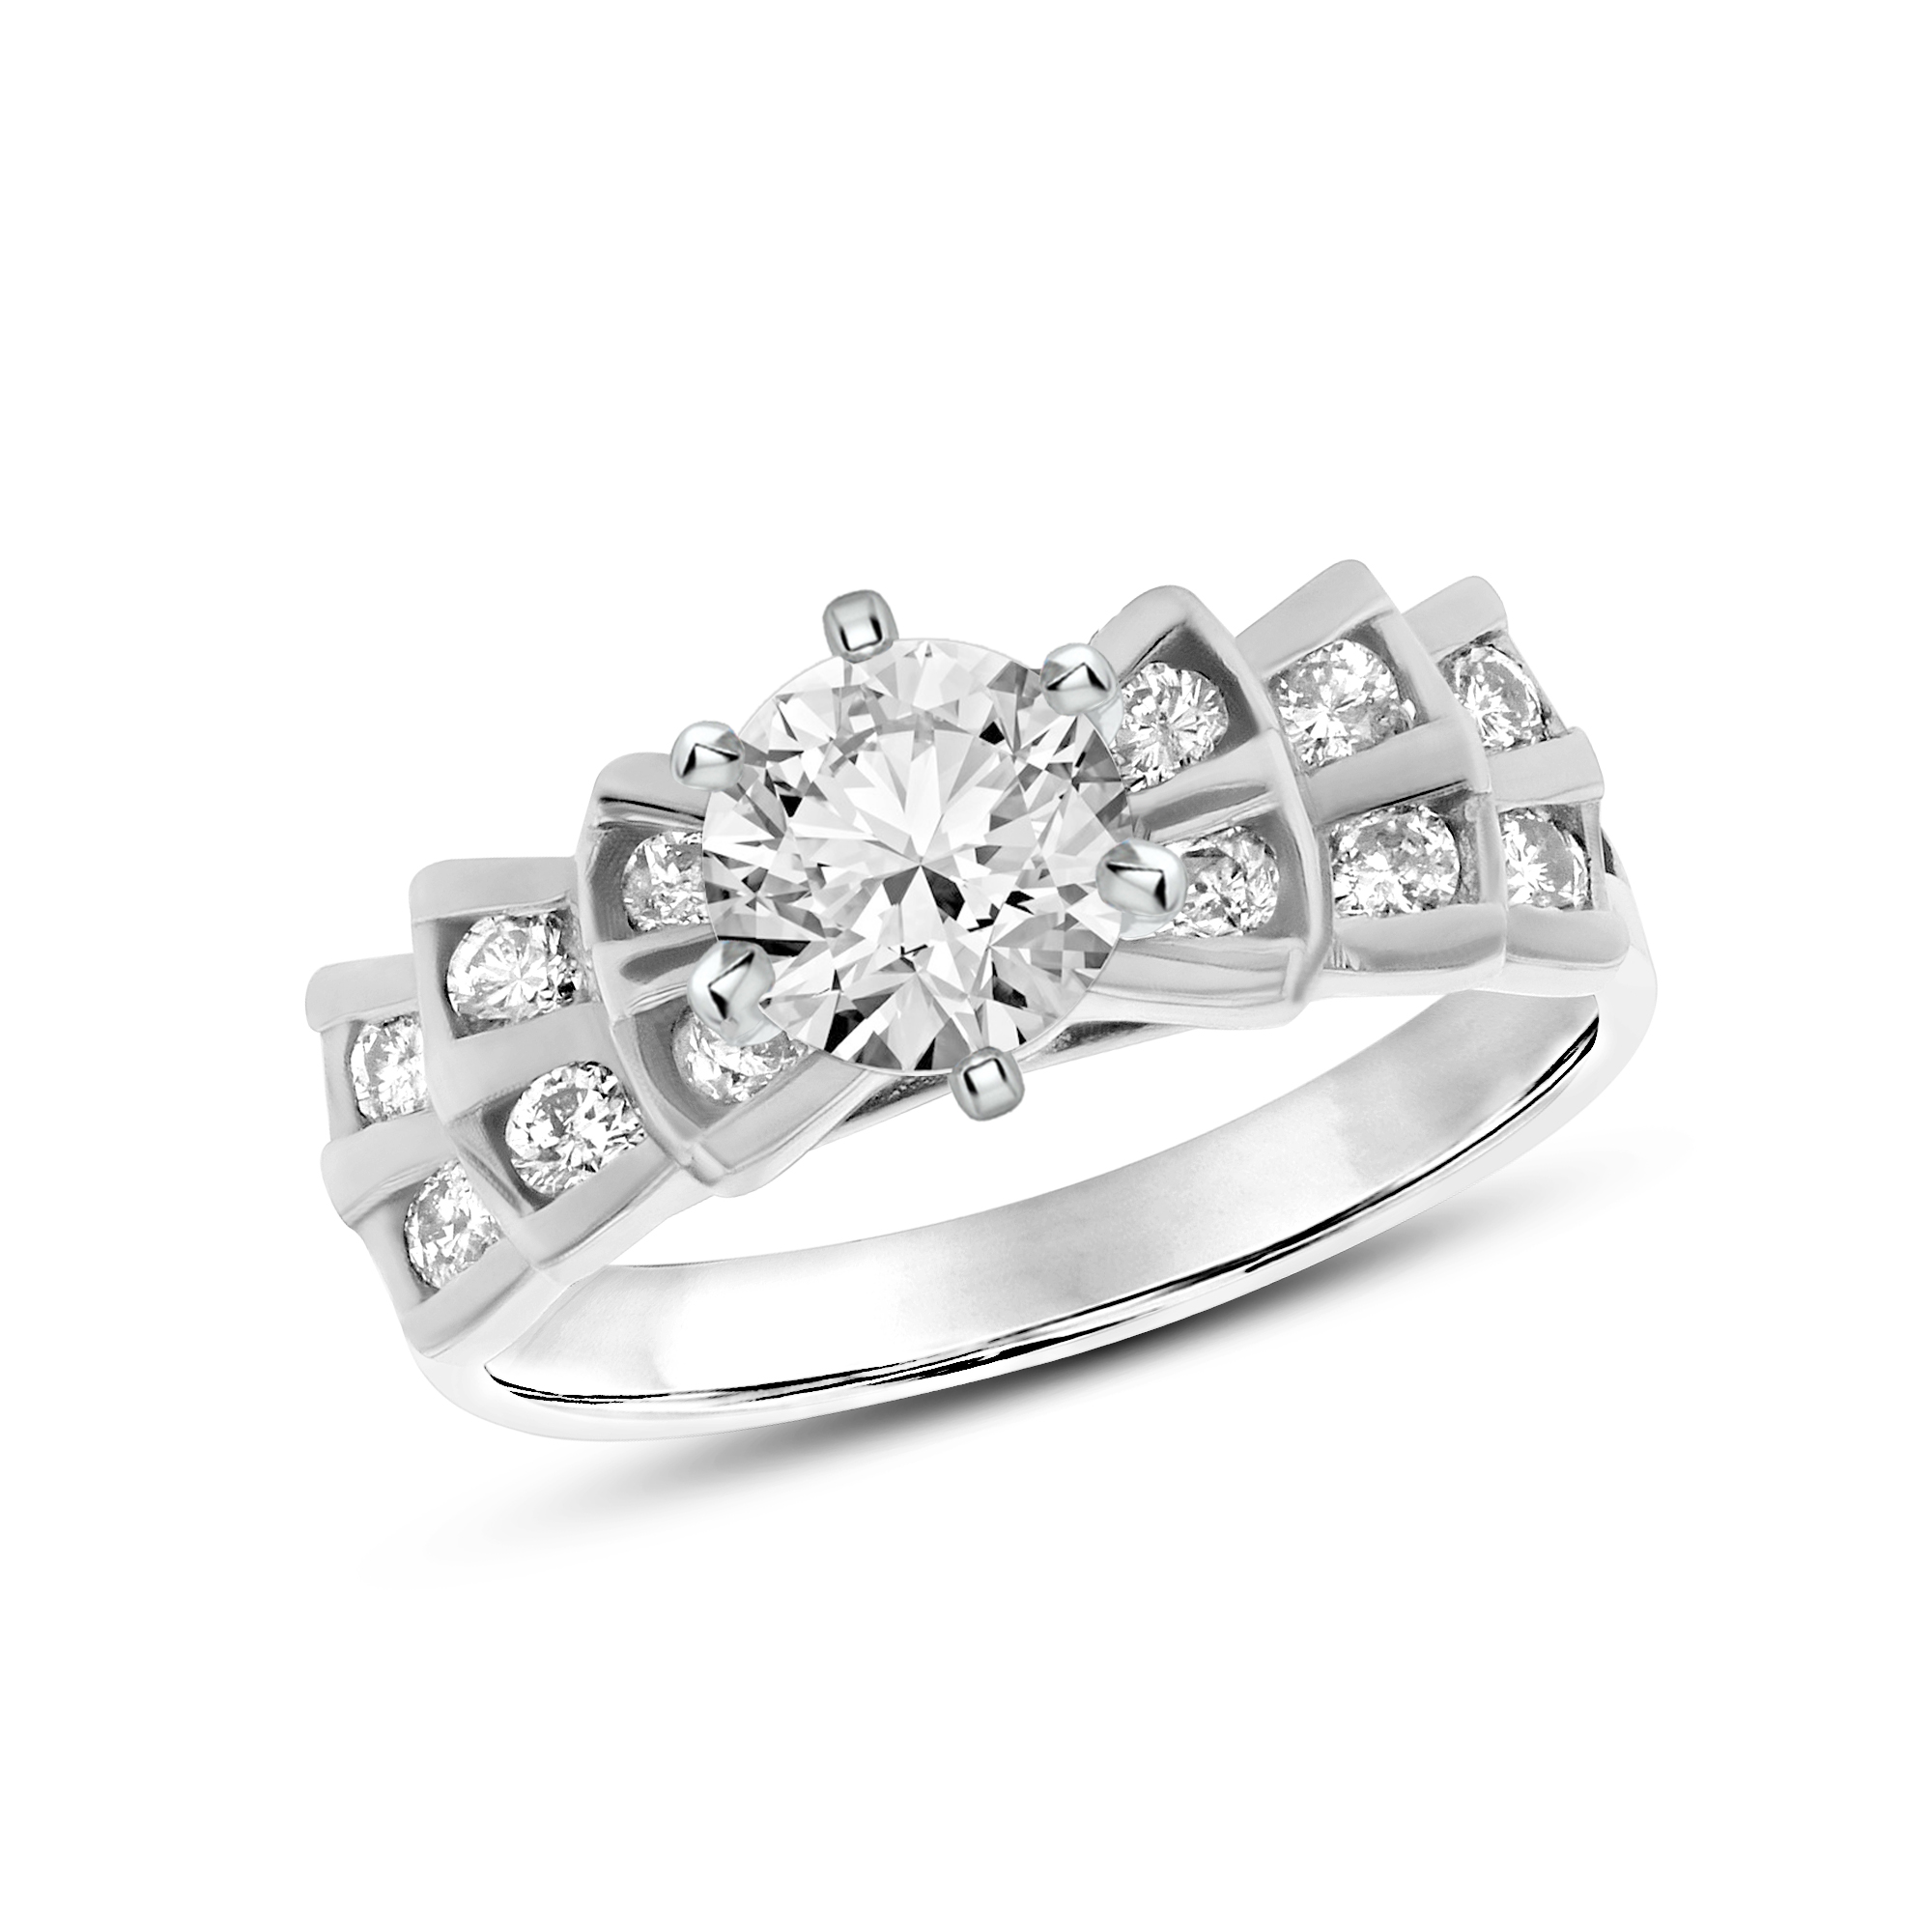 View 0.85ctw Diamond Engagement Ring in 14k White Gold